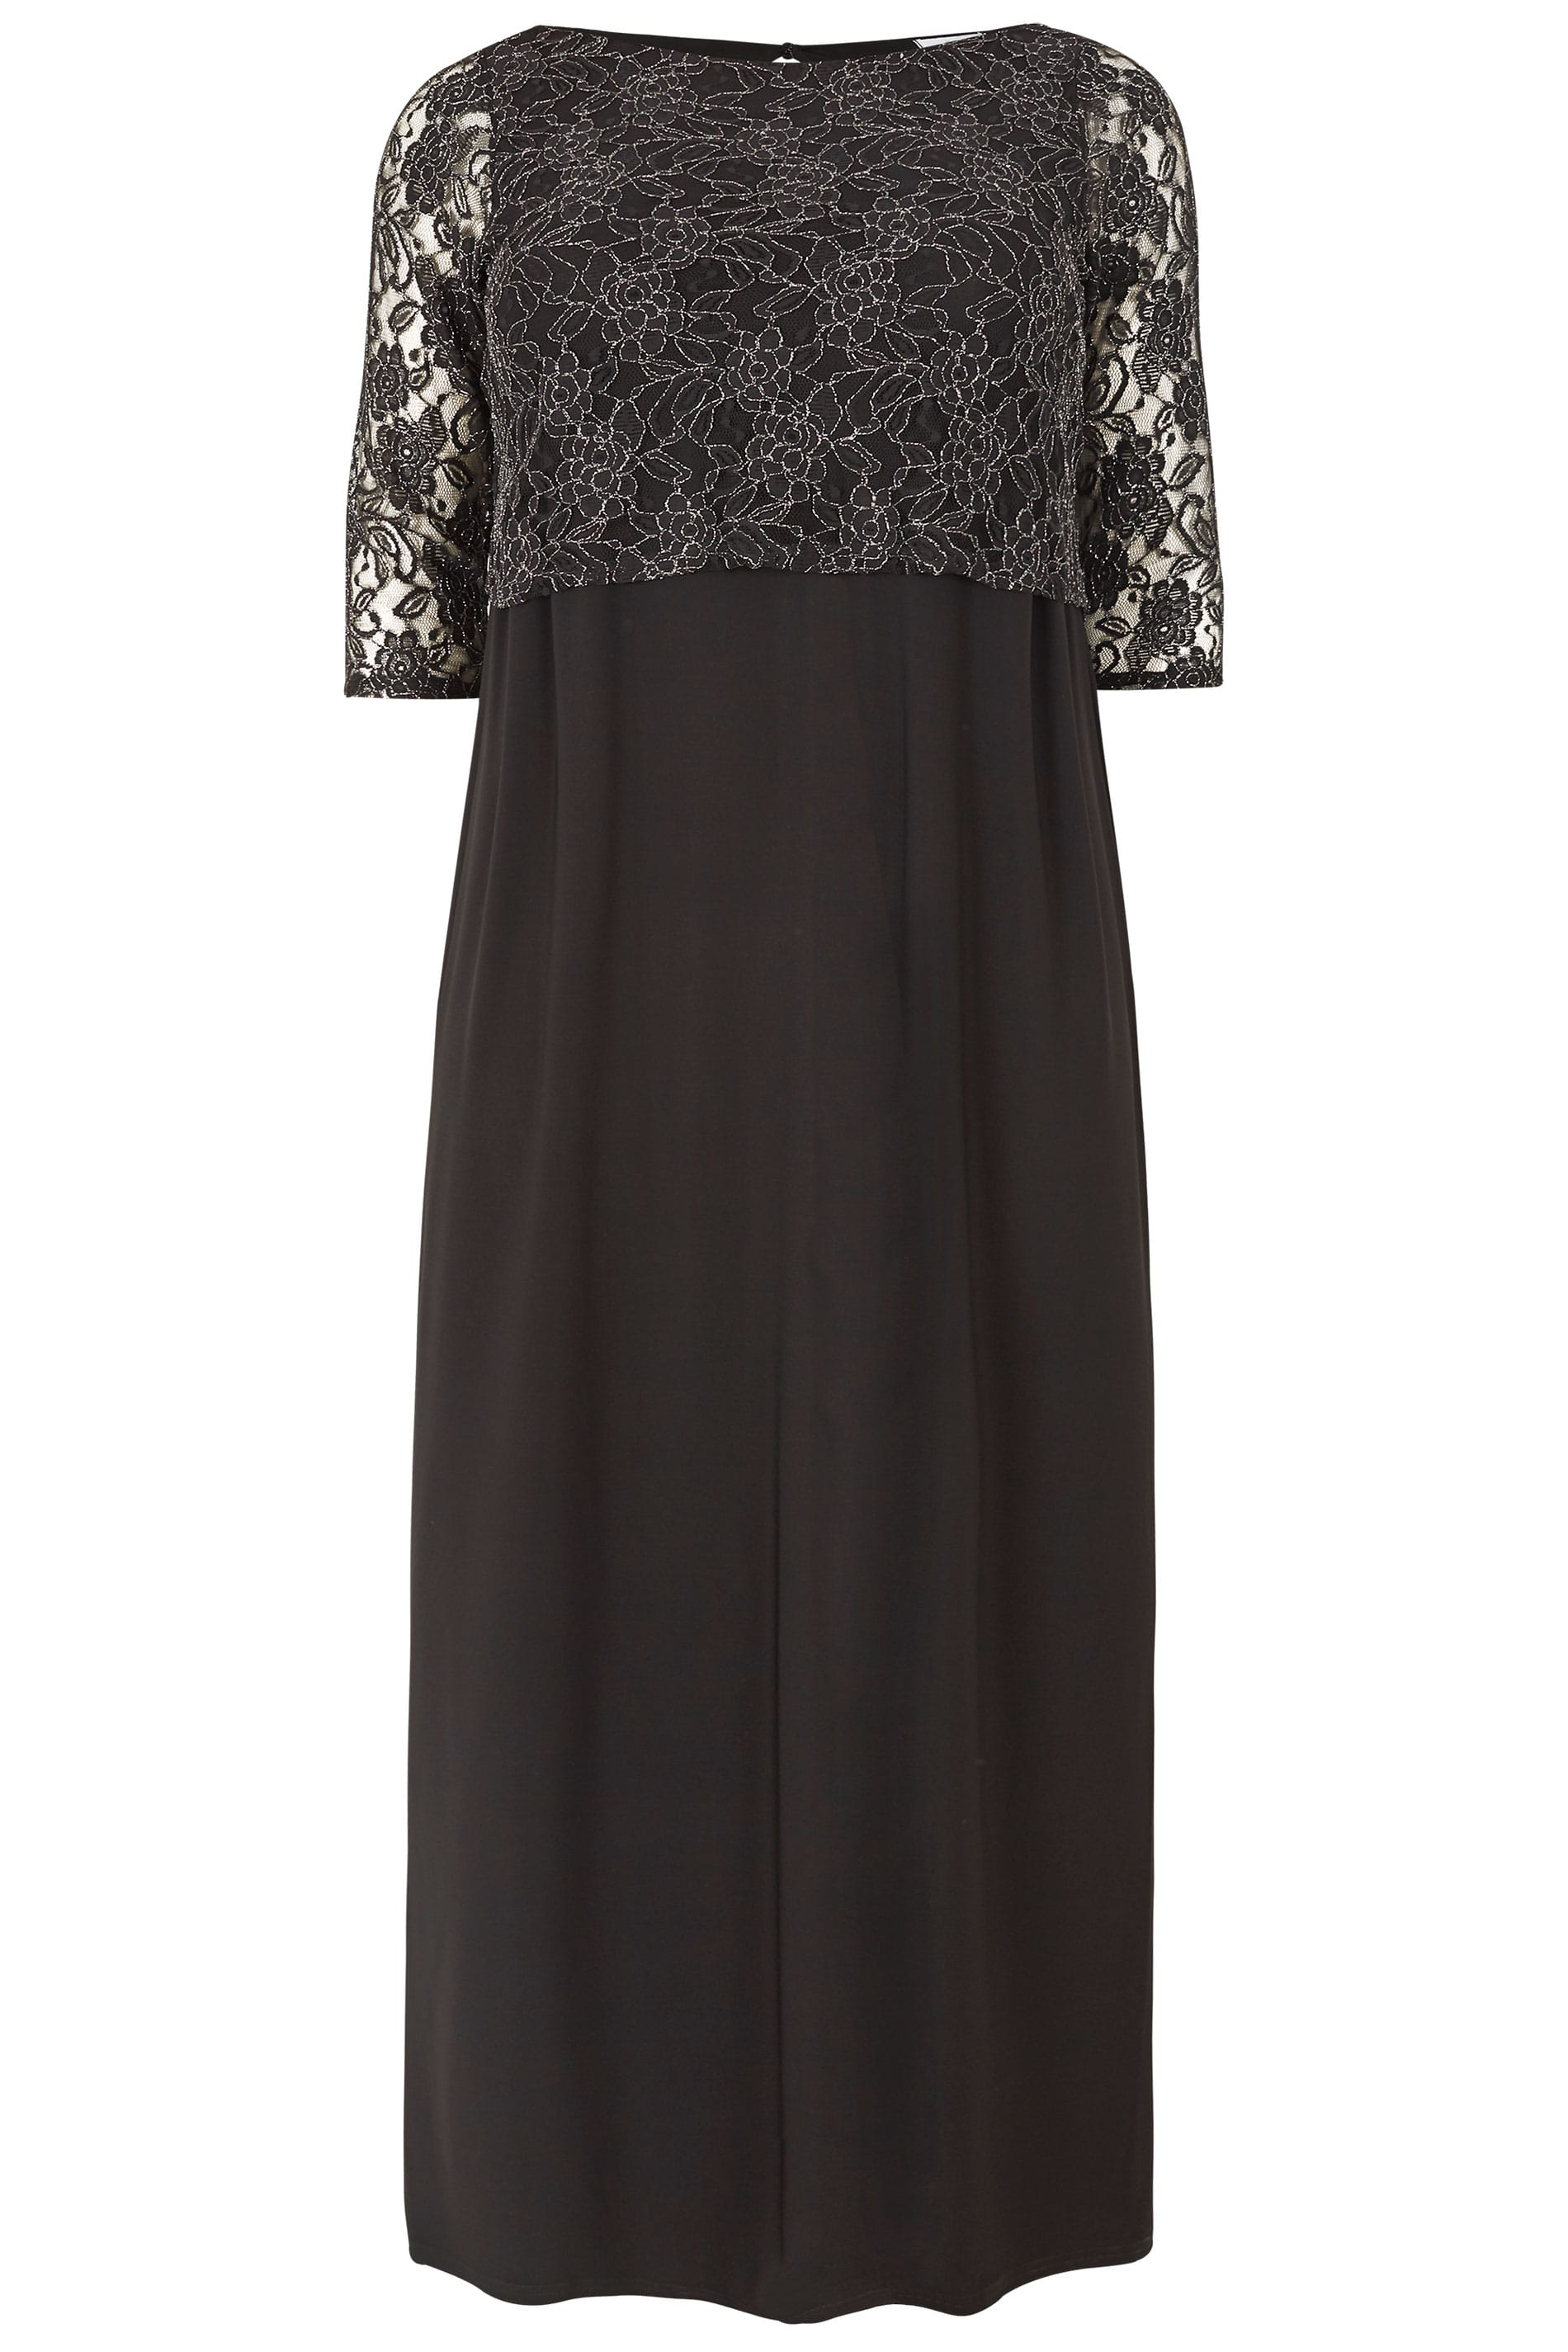 Yours London Black Metallic Lace Maxi Dress Plus Size 16